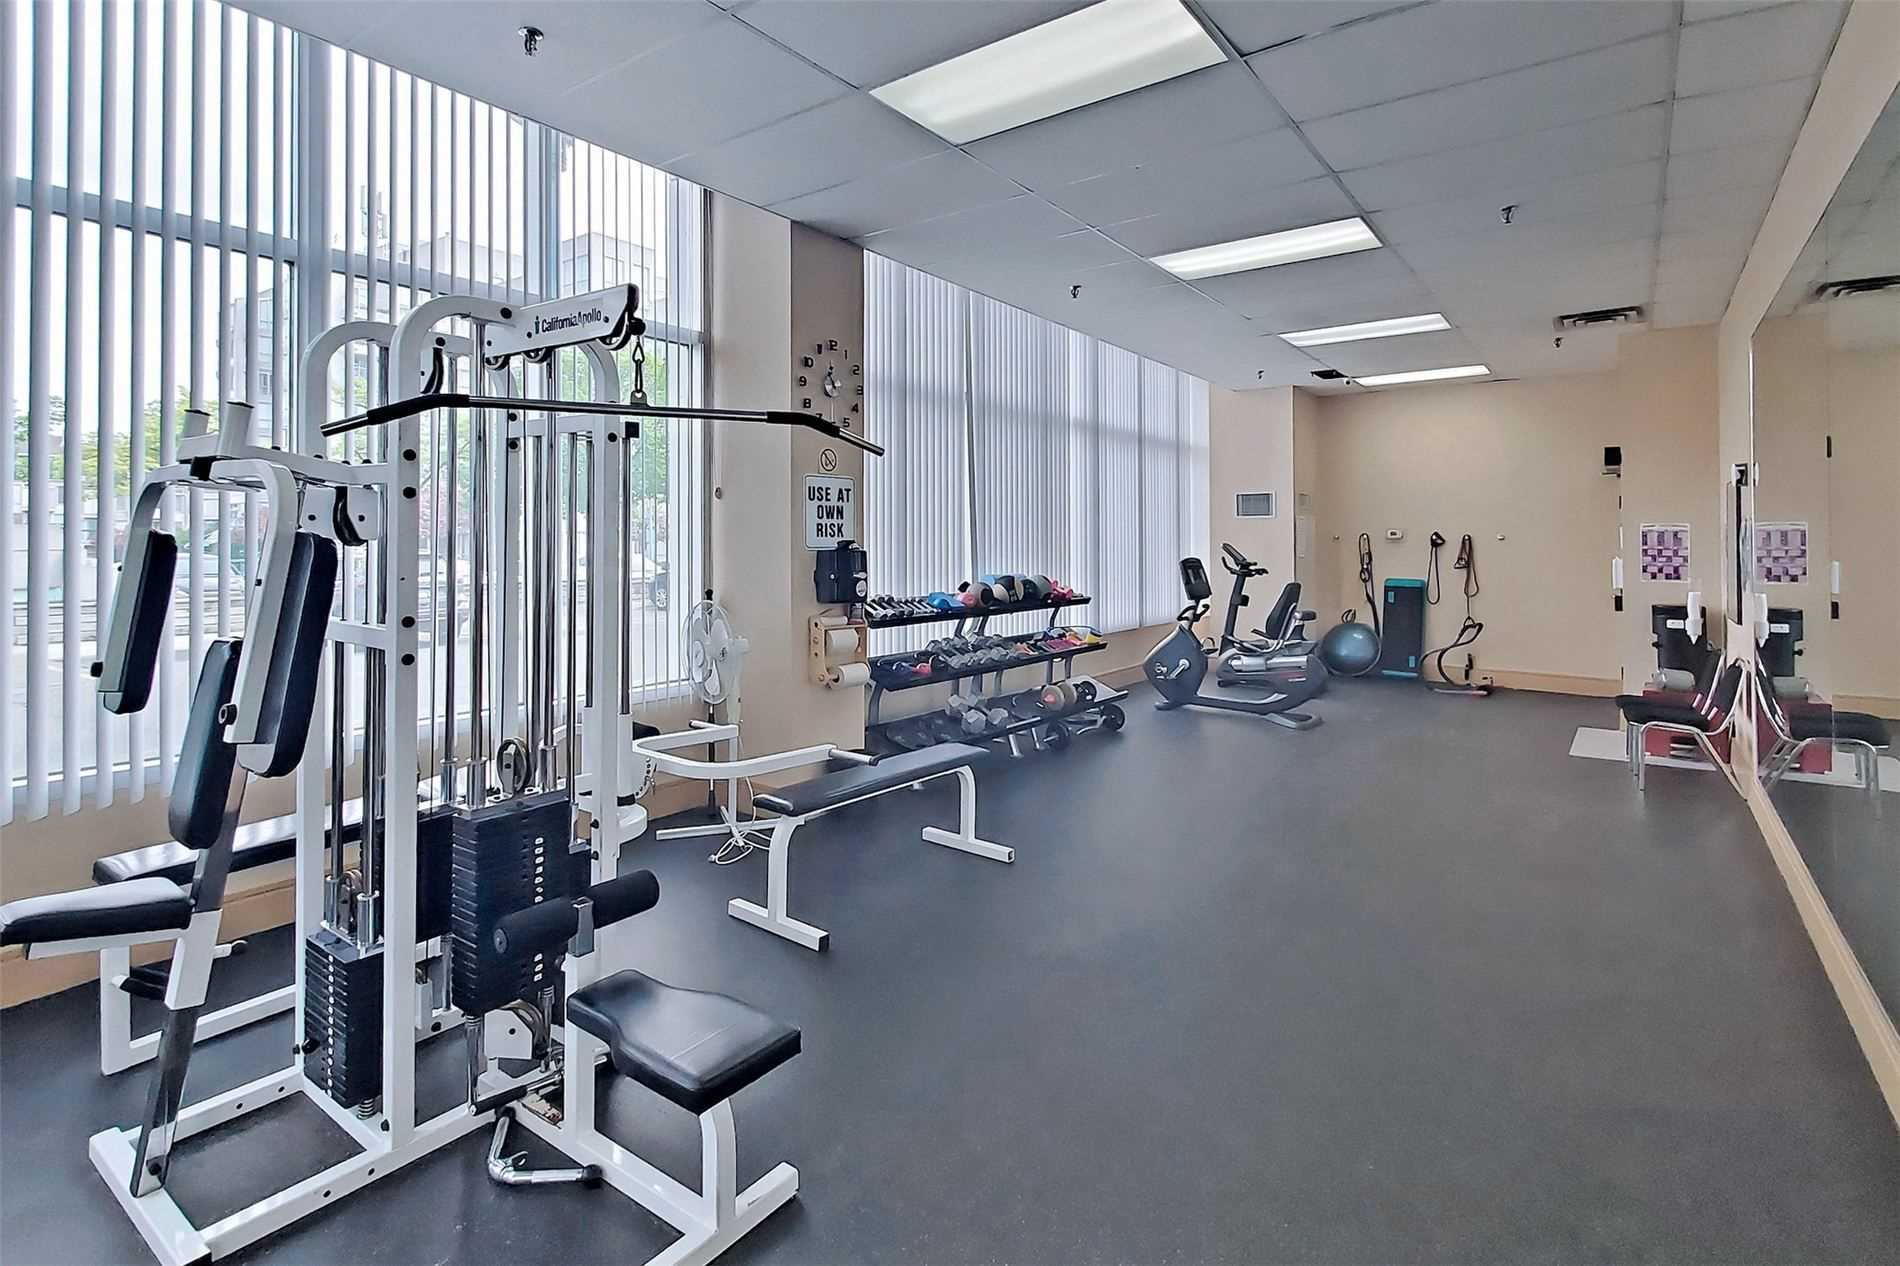 Image 25 of 40 showing inside of 2 Bedroom Condo Apt 2-Storey for Sale at 25 Cumberland Lane Unit# 105, Ajax L1S7K1